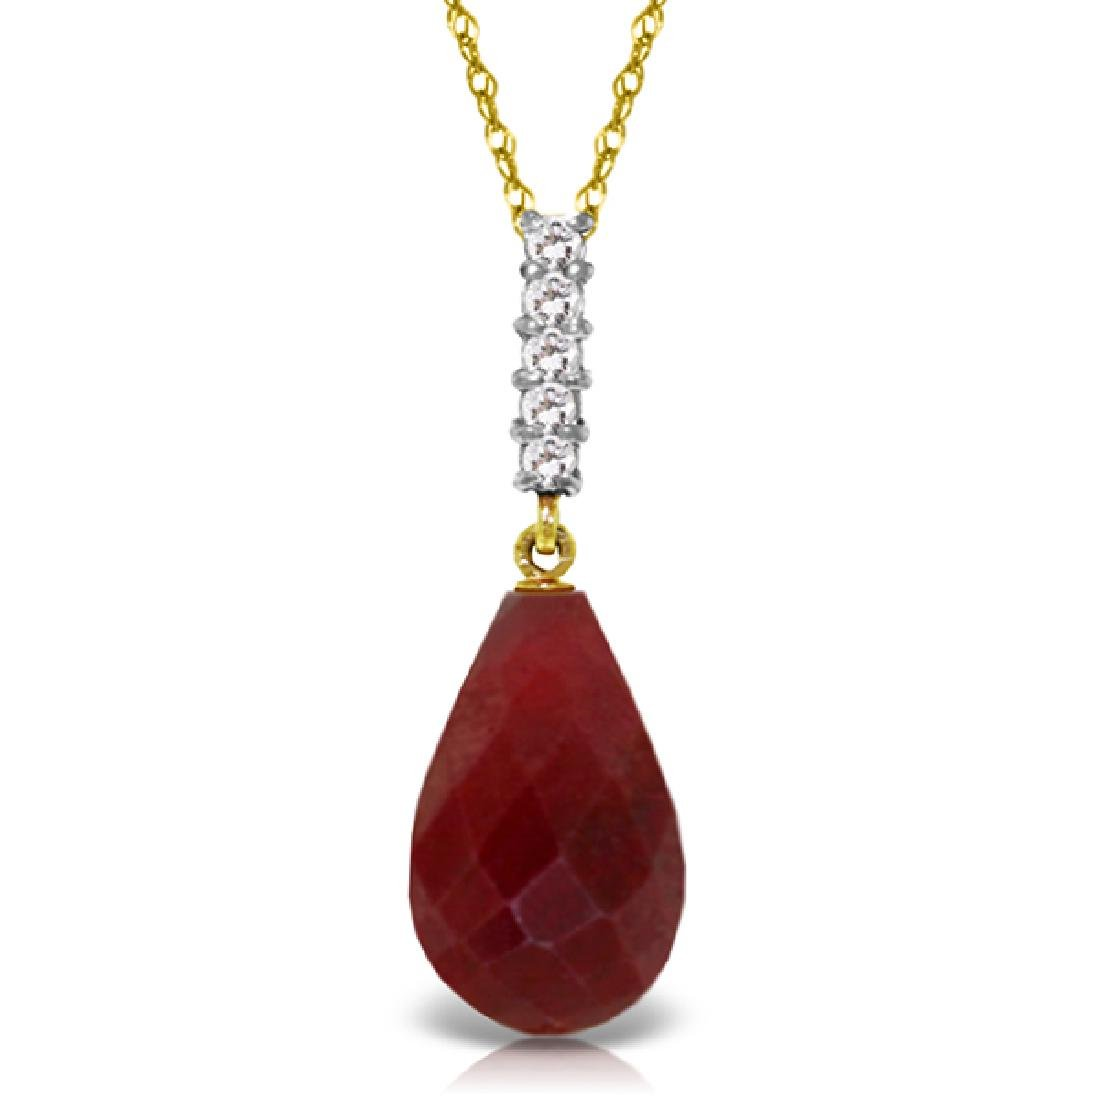 Genuine 8.88 ctw Ruby & Diamond Necklace Jewelry 14KT